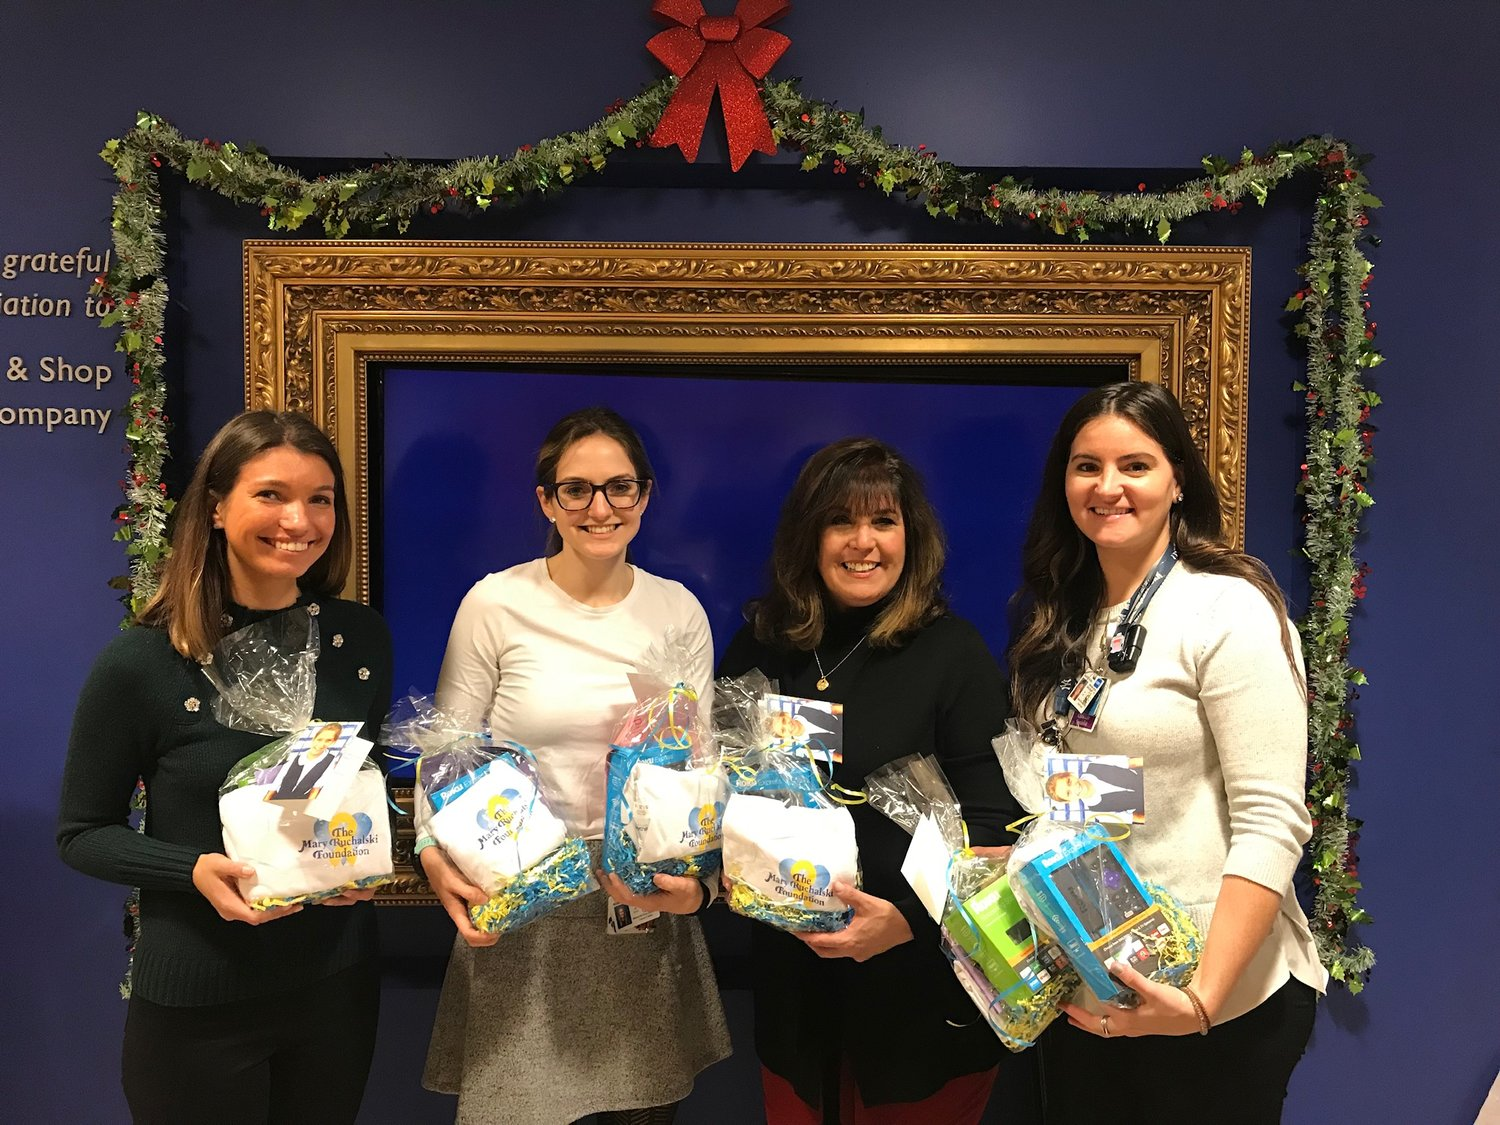 Mary's sister Lyndsey, far left, and mother, Carol, second from right, joined Abby Marriott, second from left, and Rachel Corner at Memorial Sloan Kettering Cancer Center in December to give Roku digital media players to patients.